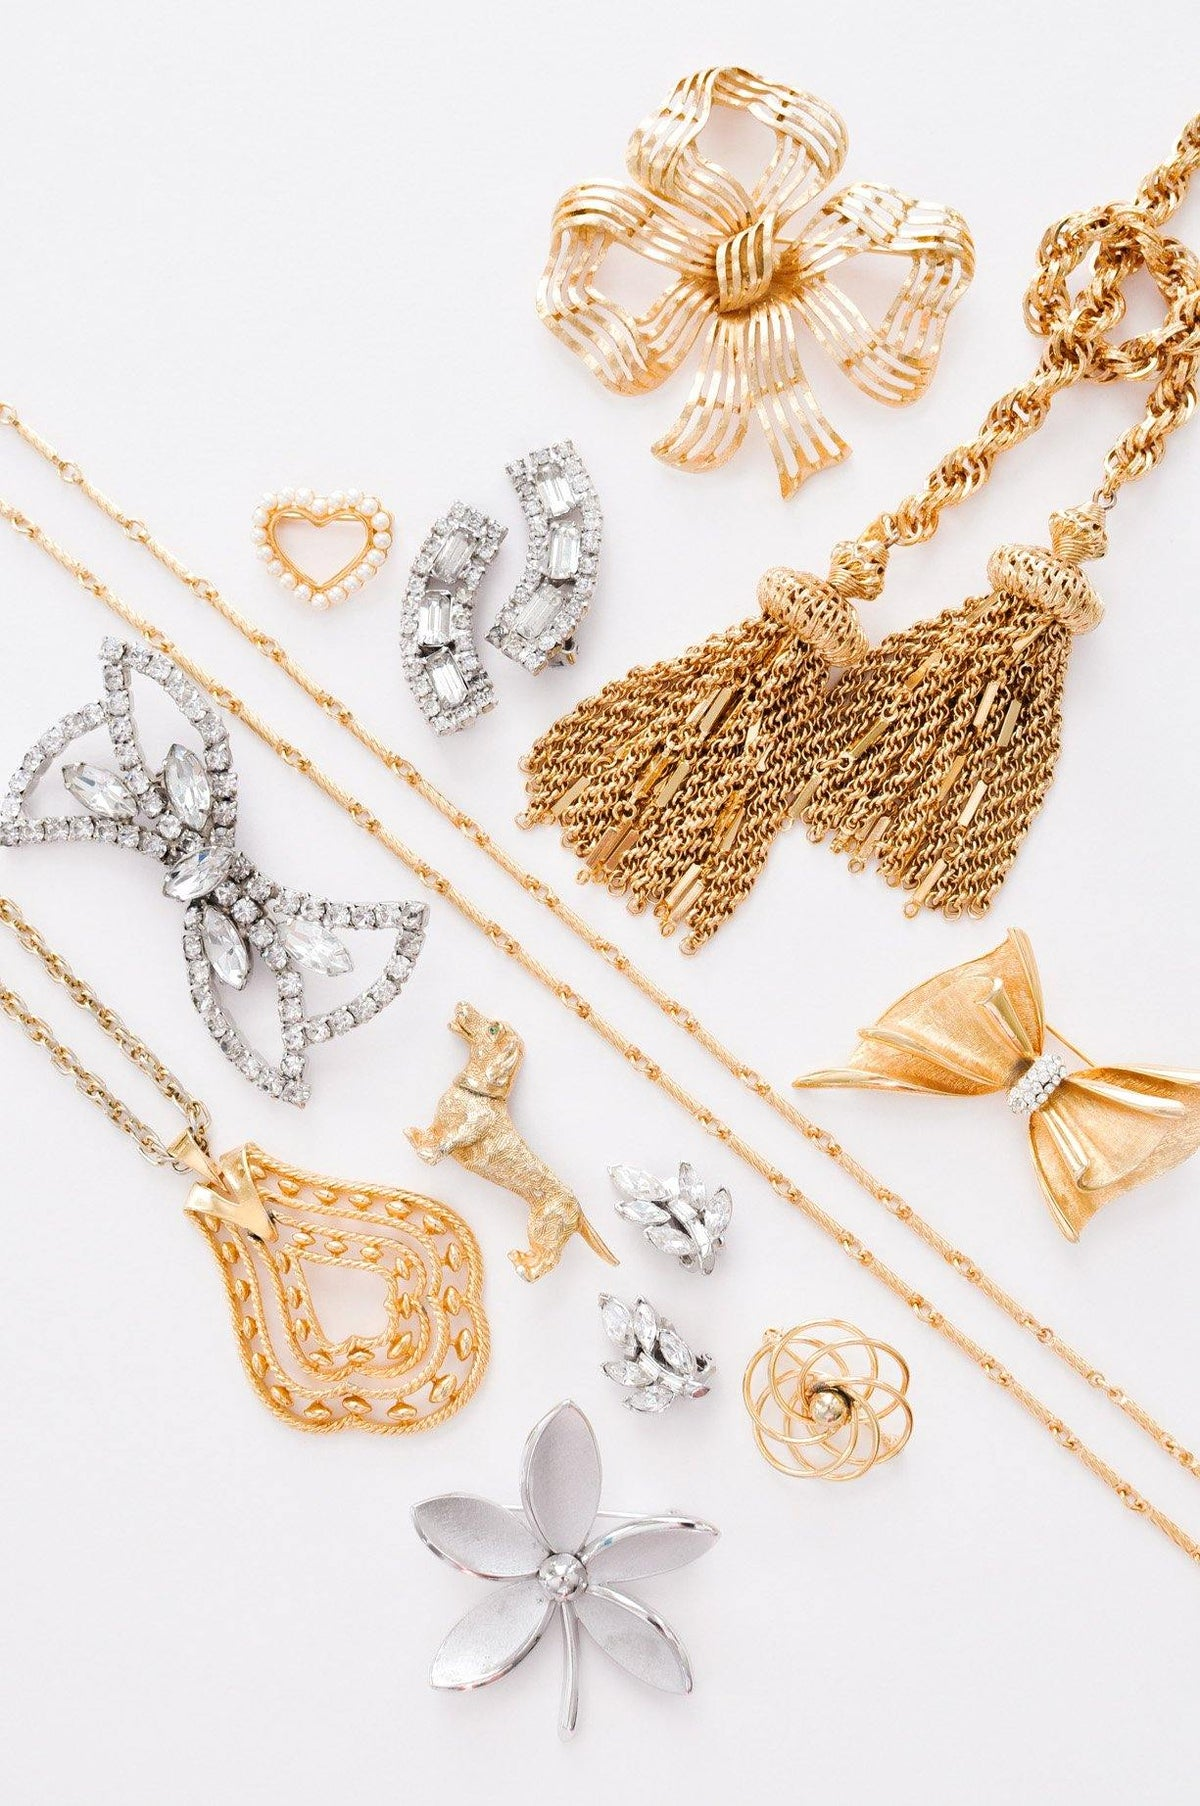 Vintage jewelry essentials from Sweet & Spark.